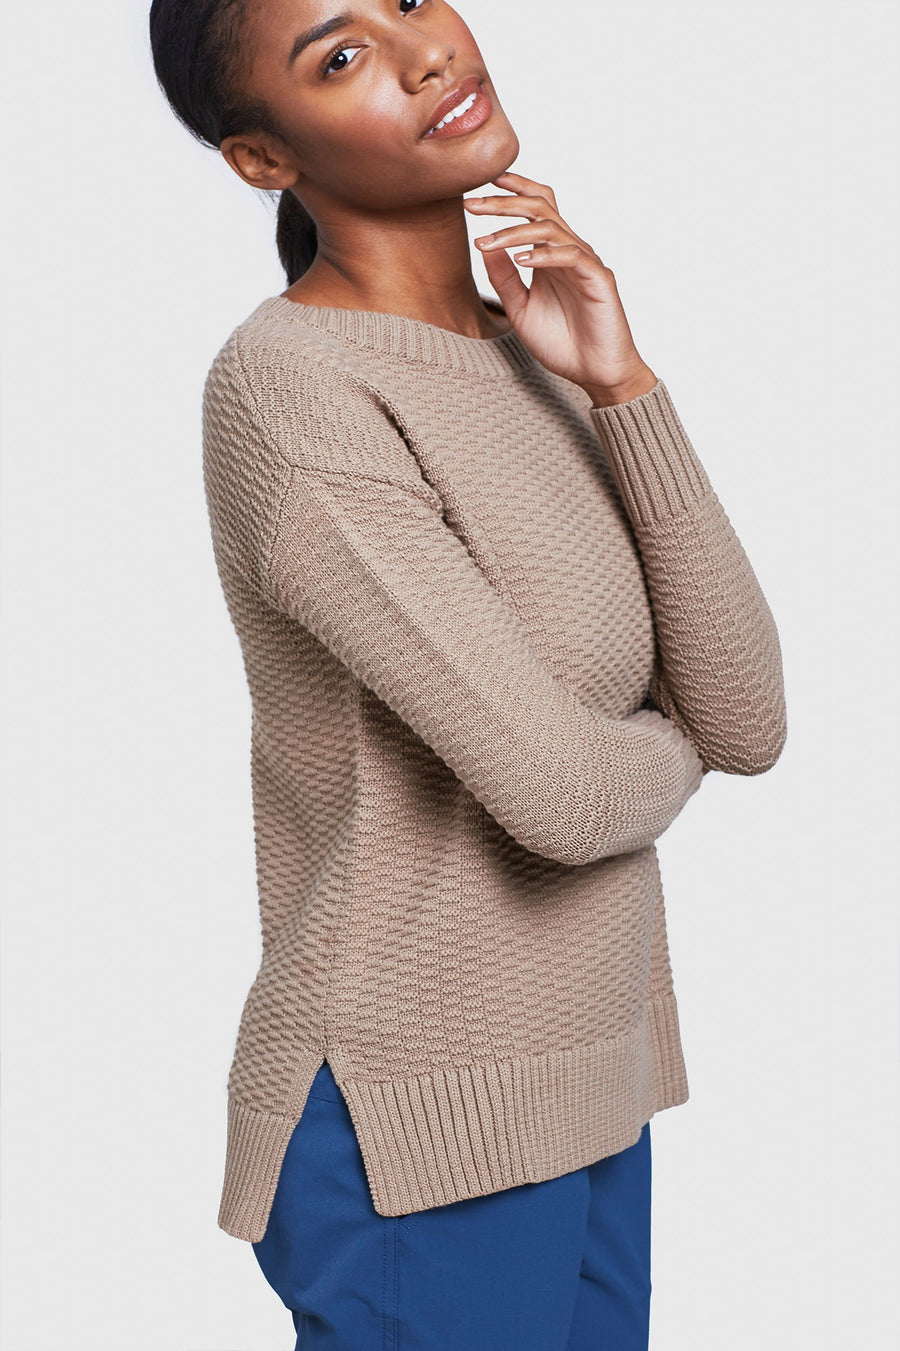 Women's United by Blue Himley Waffle Sweater